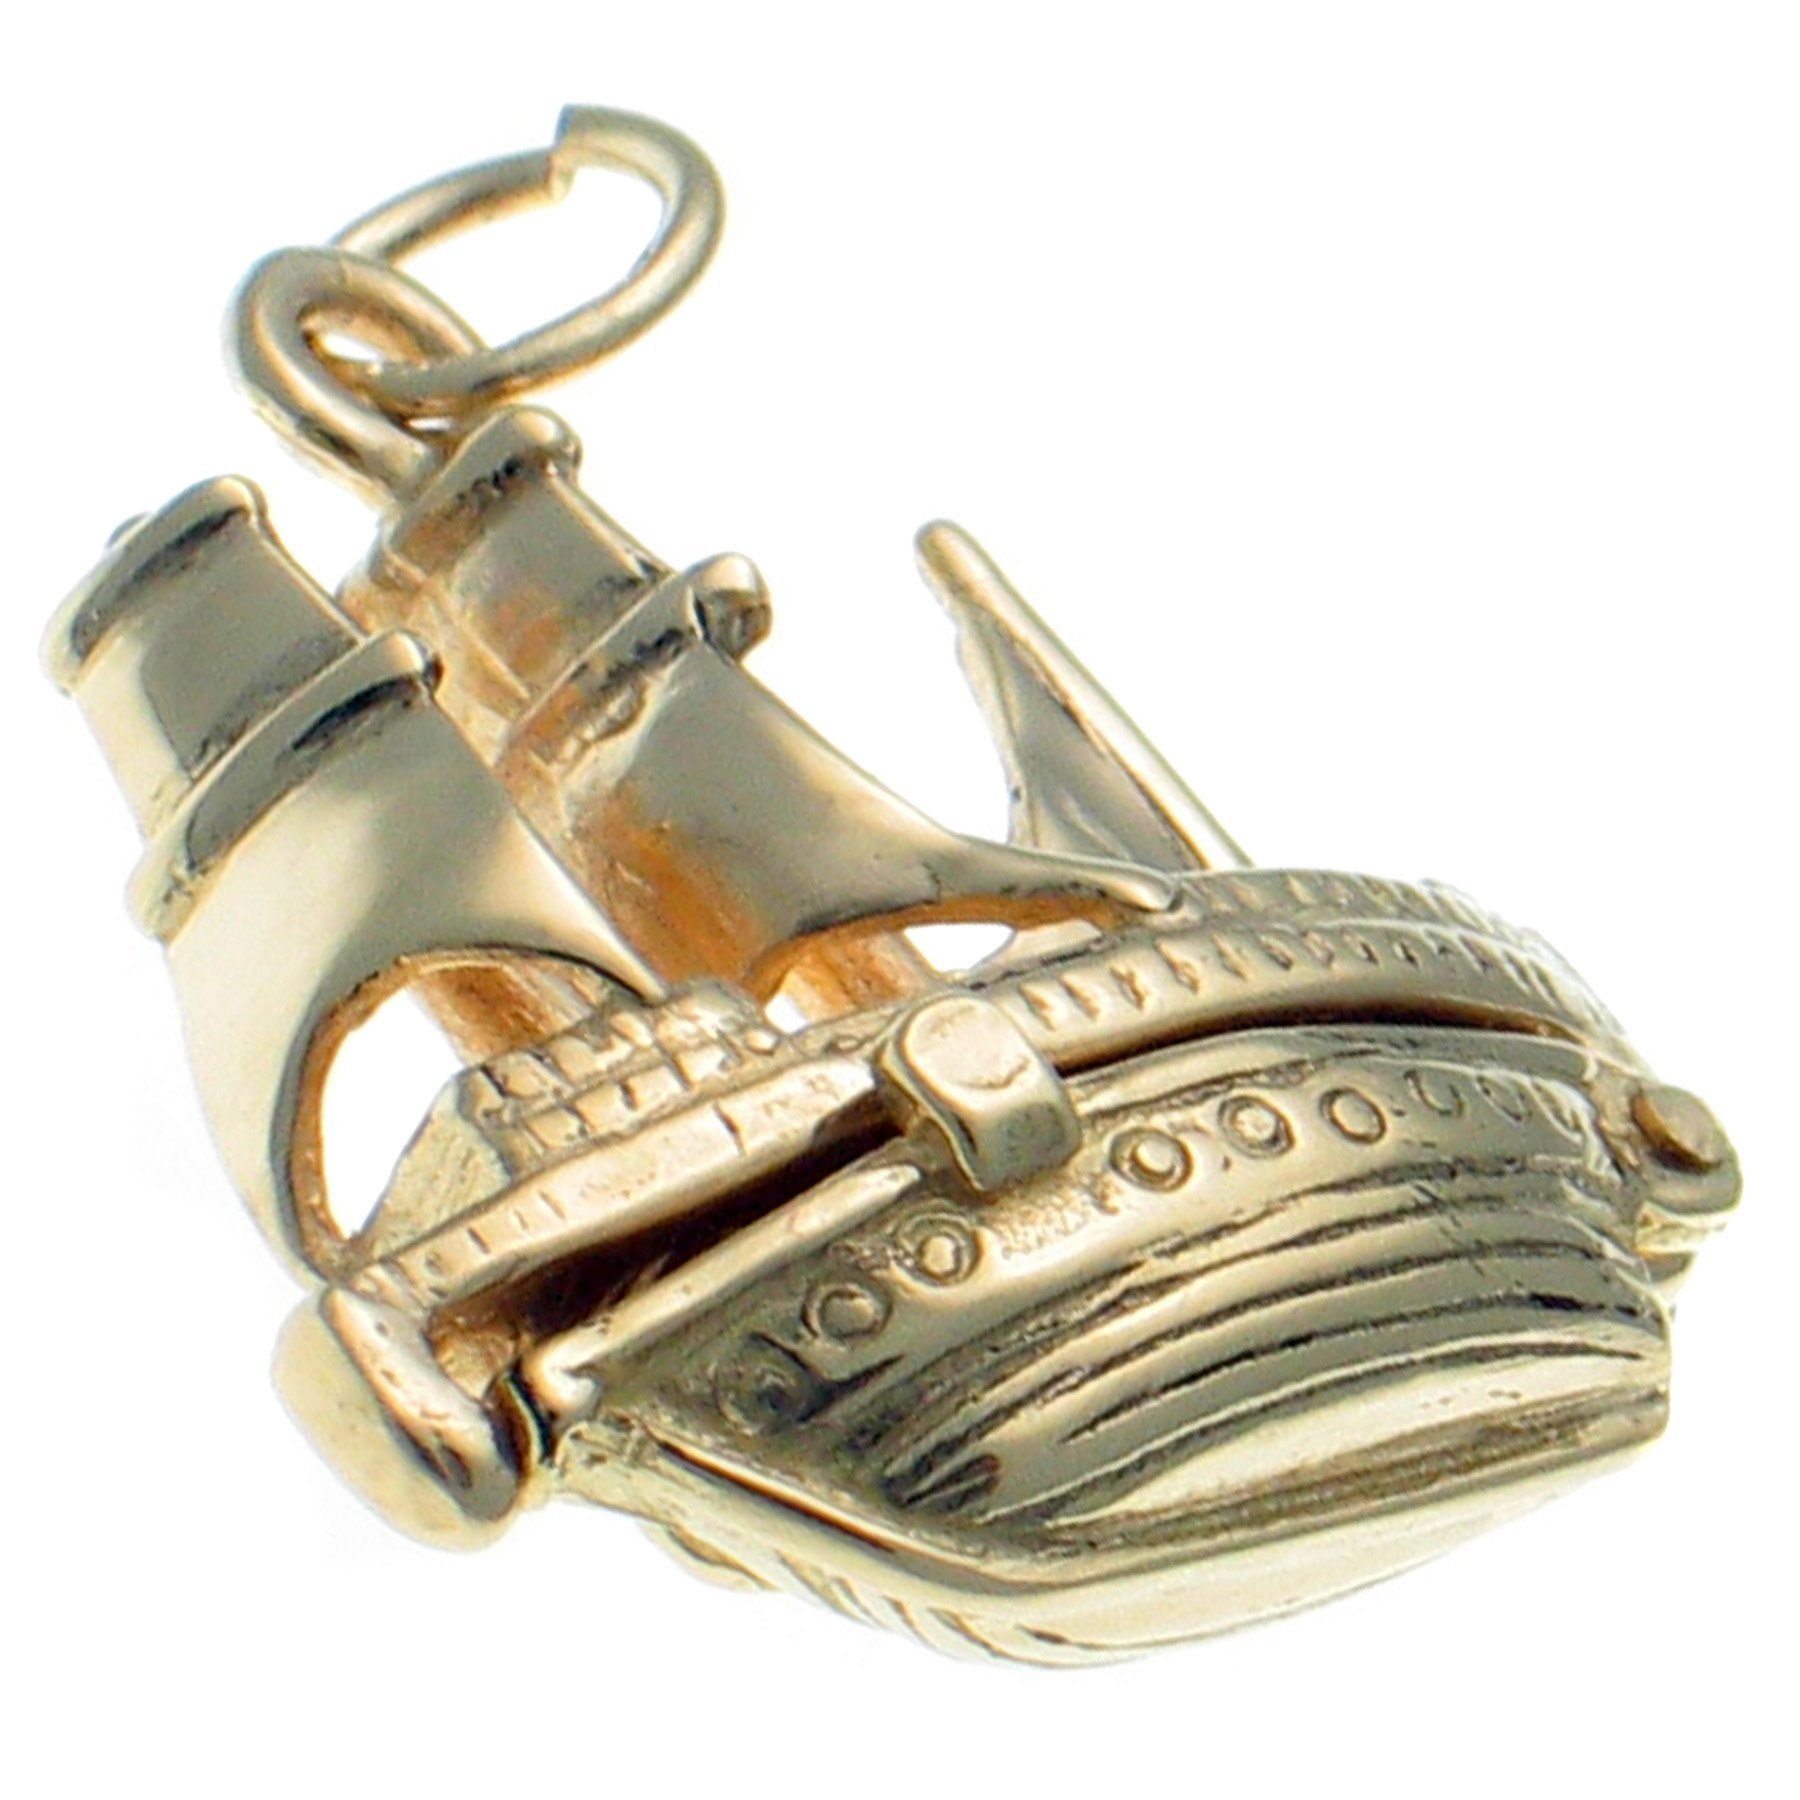 9ct Gold Opening Charm Pendant, Mayflower Ship Opens To Show Anchor & Rope plus Engraving Inside. Handmade by Welded Bliss by Welded Bliss